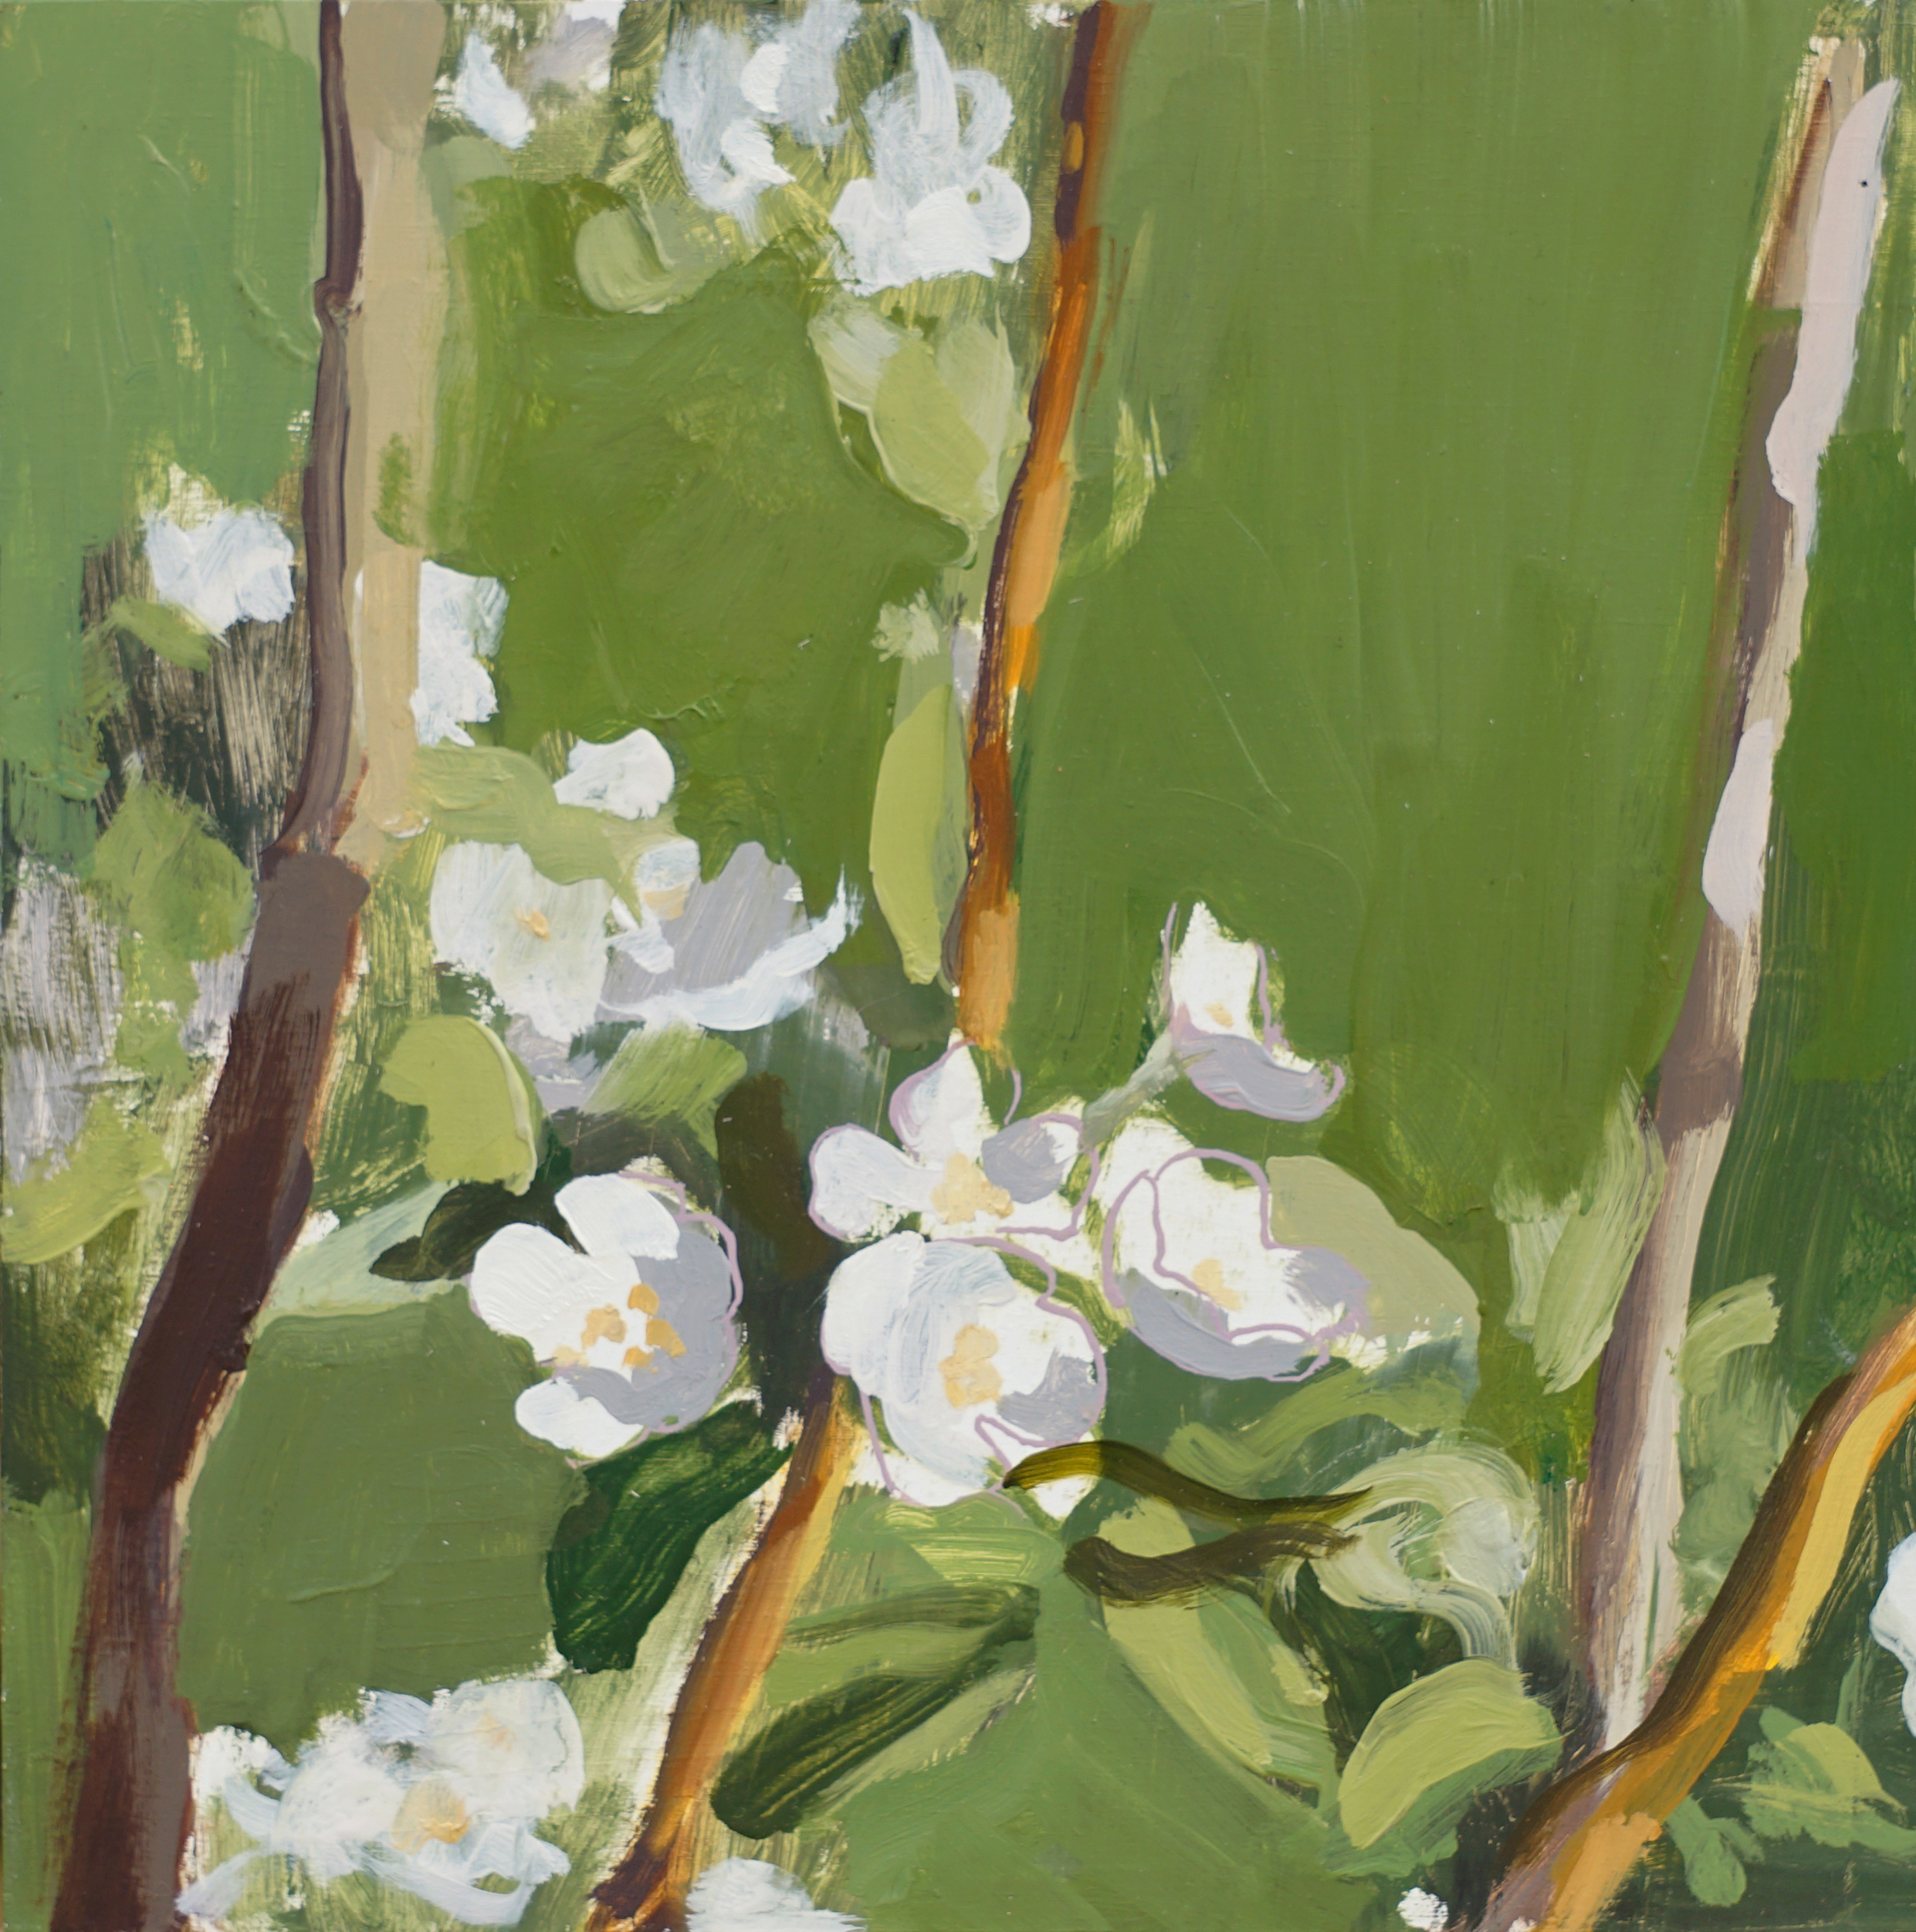 mark-crenshaw-1734-pear-blossom-green-with-sticks-and-pink-outlines.jpg